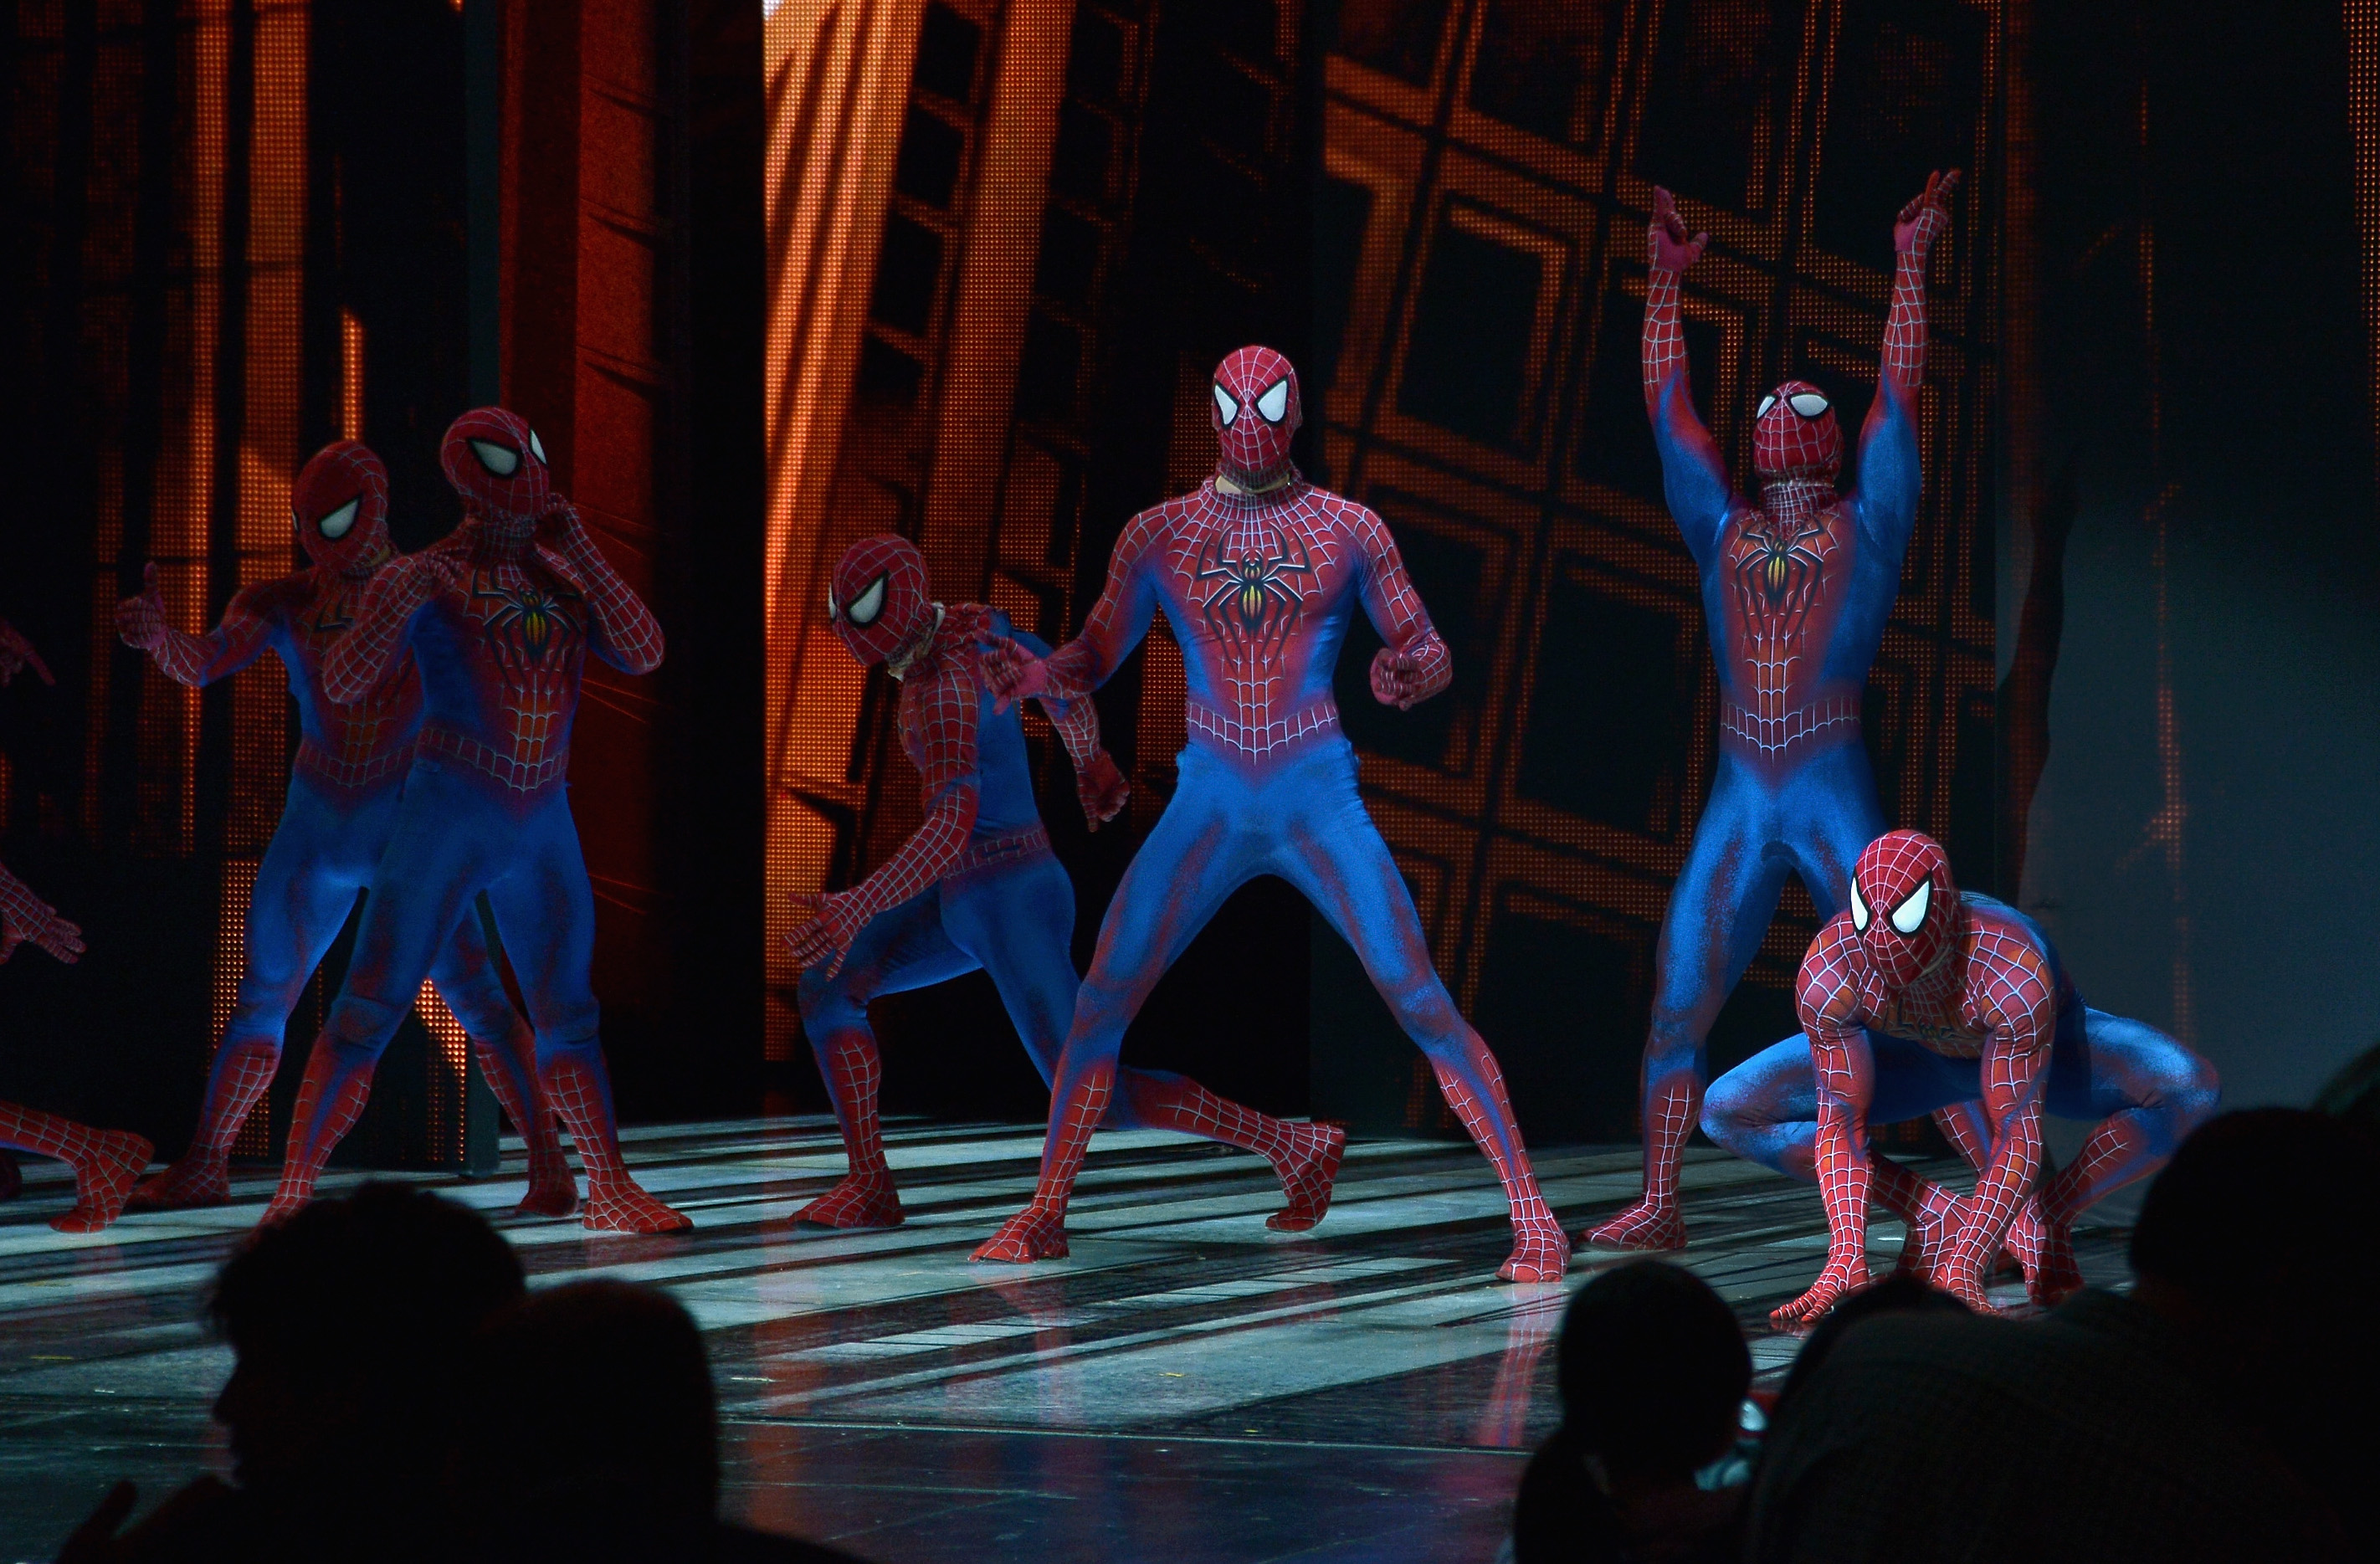 NEW YORK, NY - JANUARY 04:  Stuntmen from  Spider-Man Turn Off The Dark  take a curtain call at the final performance of Broadway's  Spider-Man Turn Off The Dark   at Foxwoods Theater on January 4, 2014 in New York City.  (Photo by Mike Coppola/Getty Images)